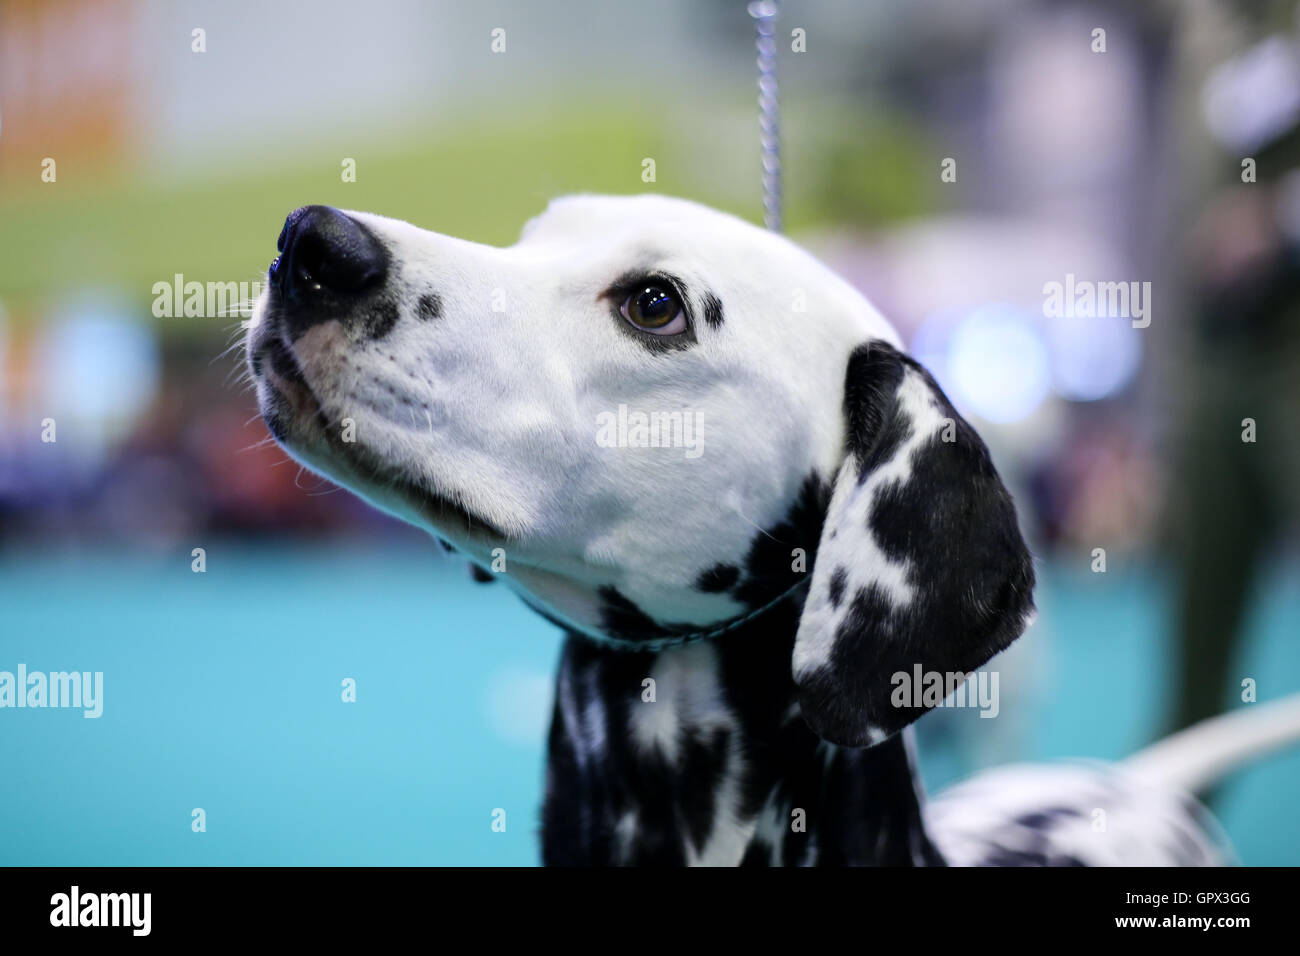 A Dalmatian at Crufts 2016 held at the NEC in Birmingham, West Midlands, UK. - Stock Image